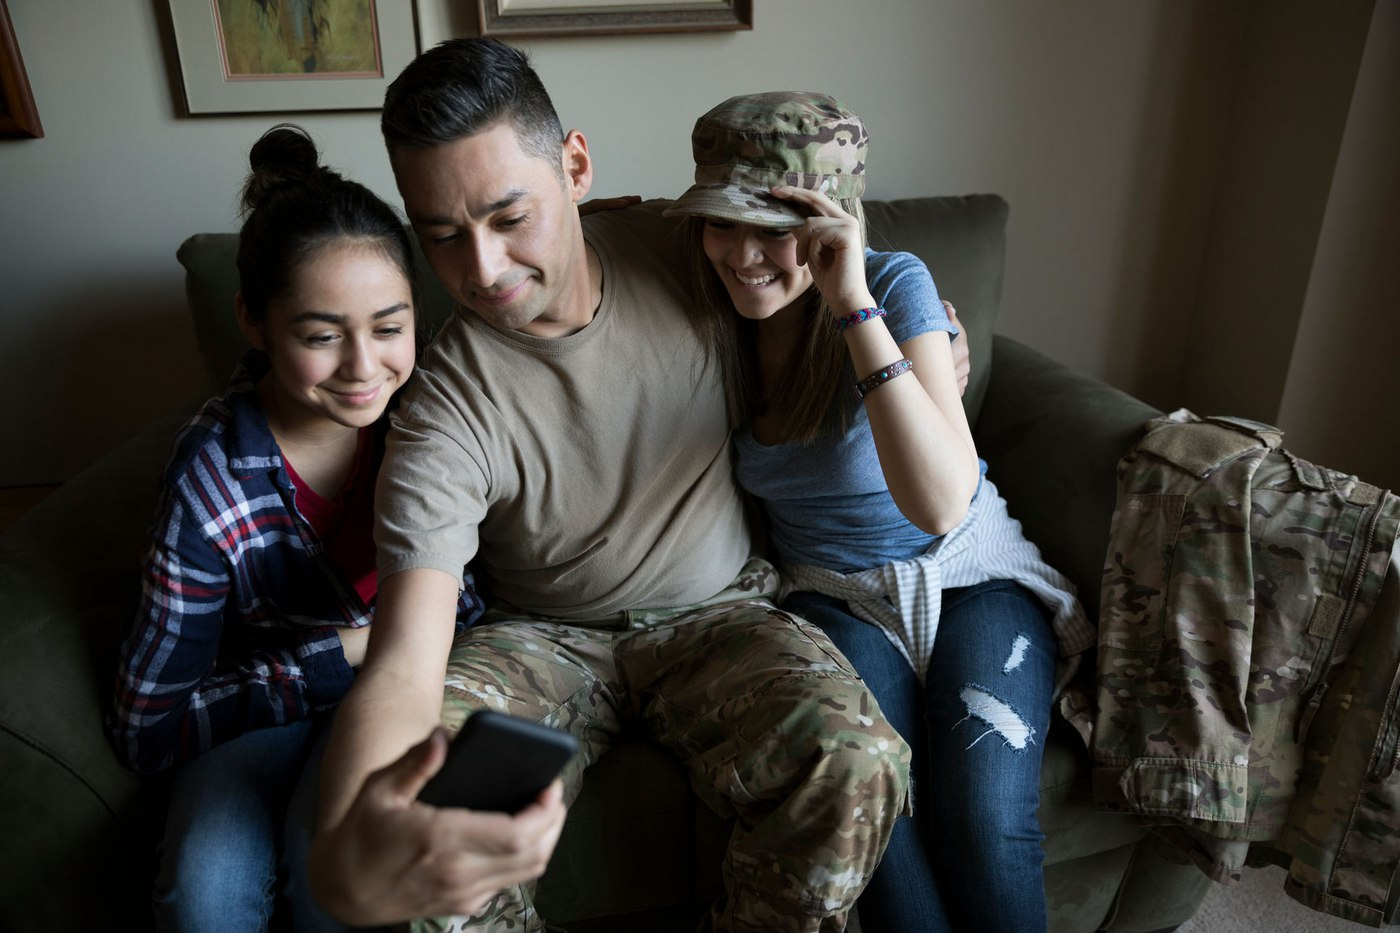 What Now? Answering the Career Call for Military Veterans